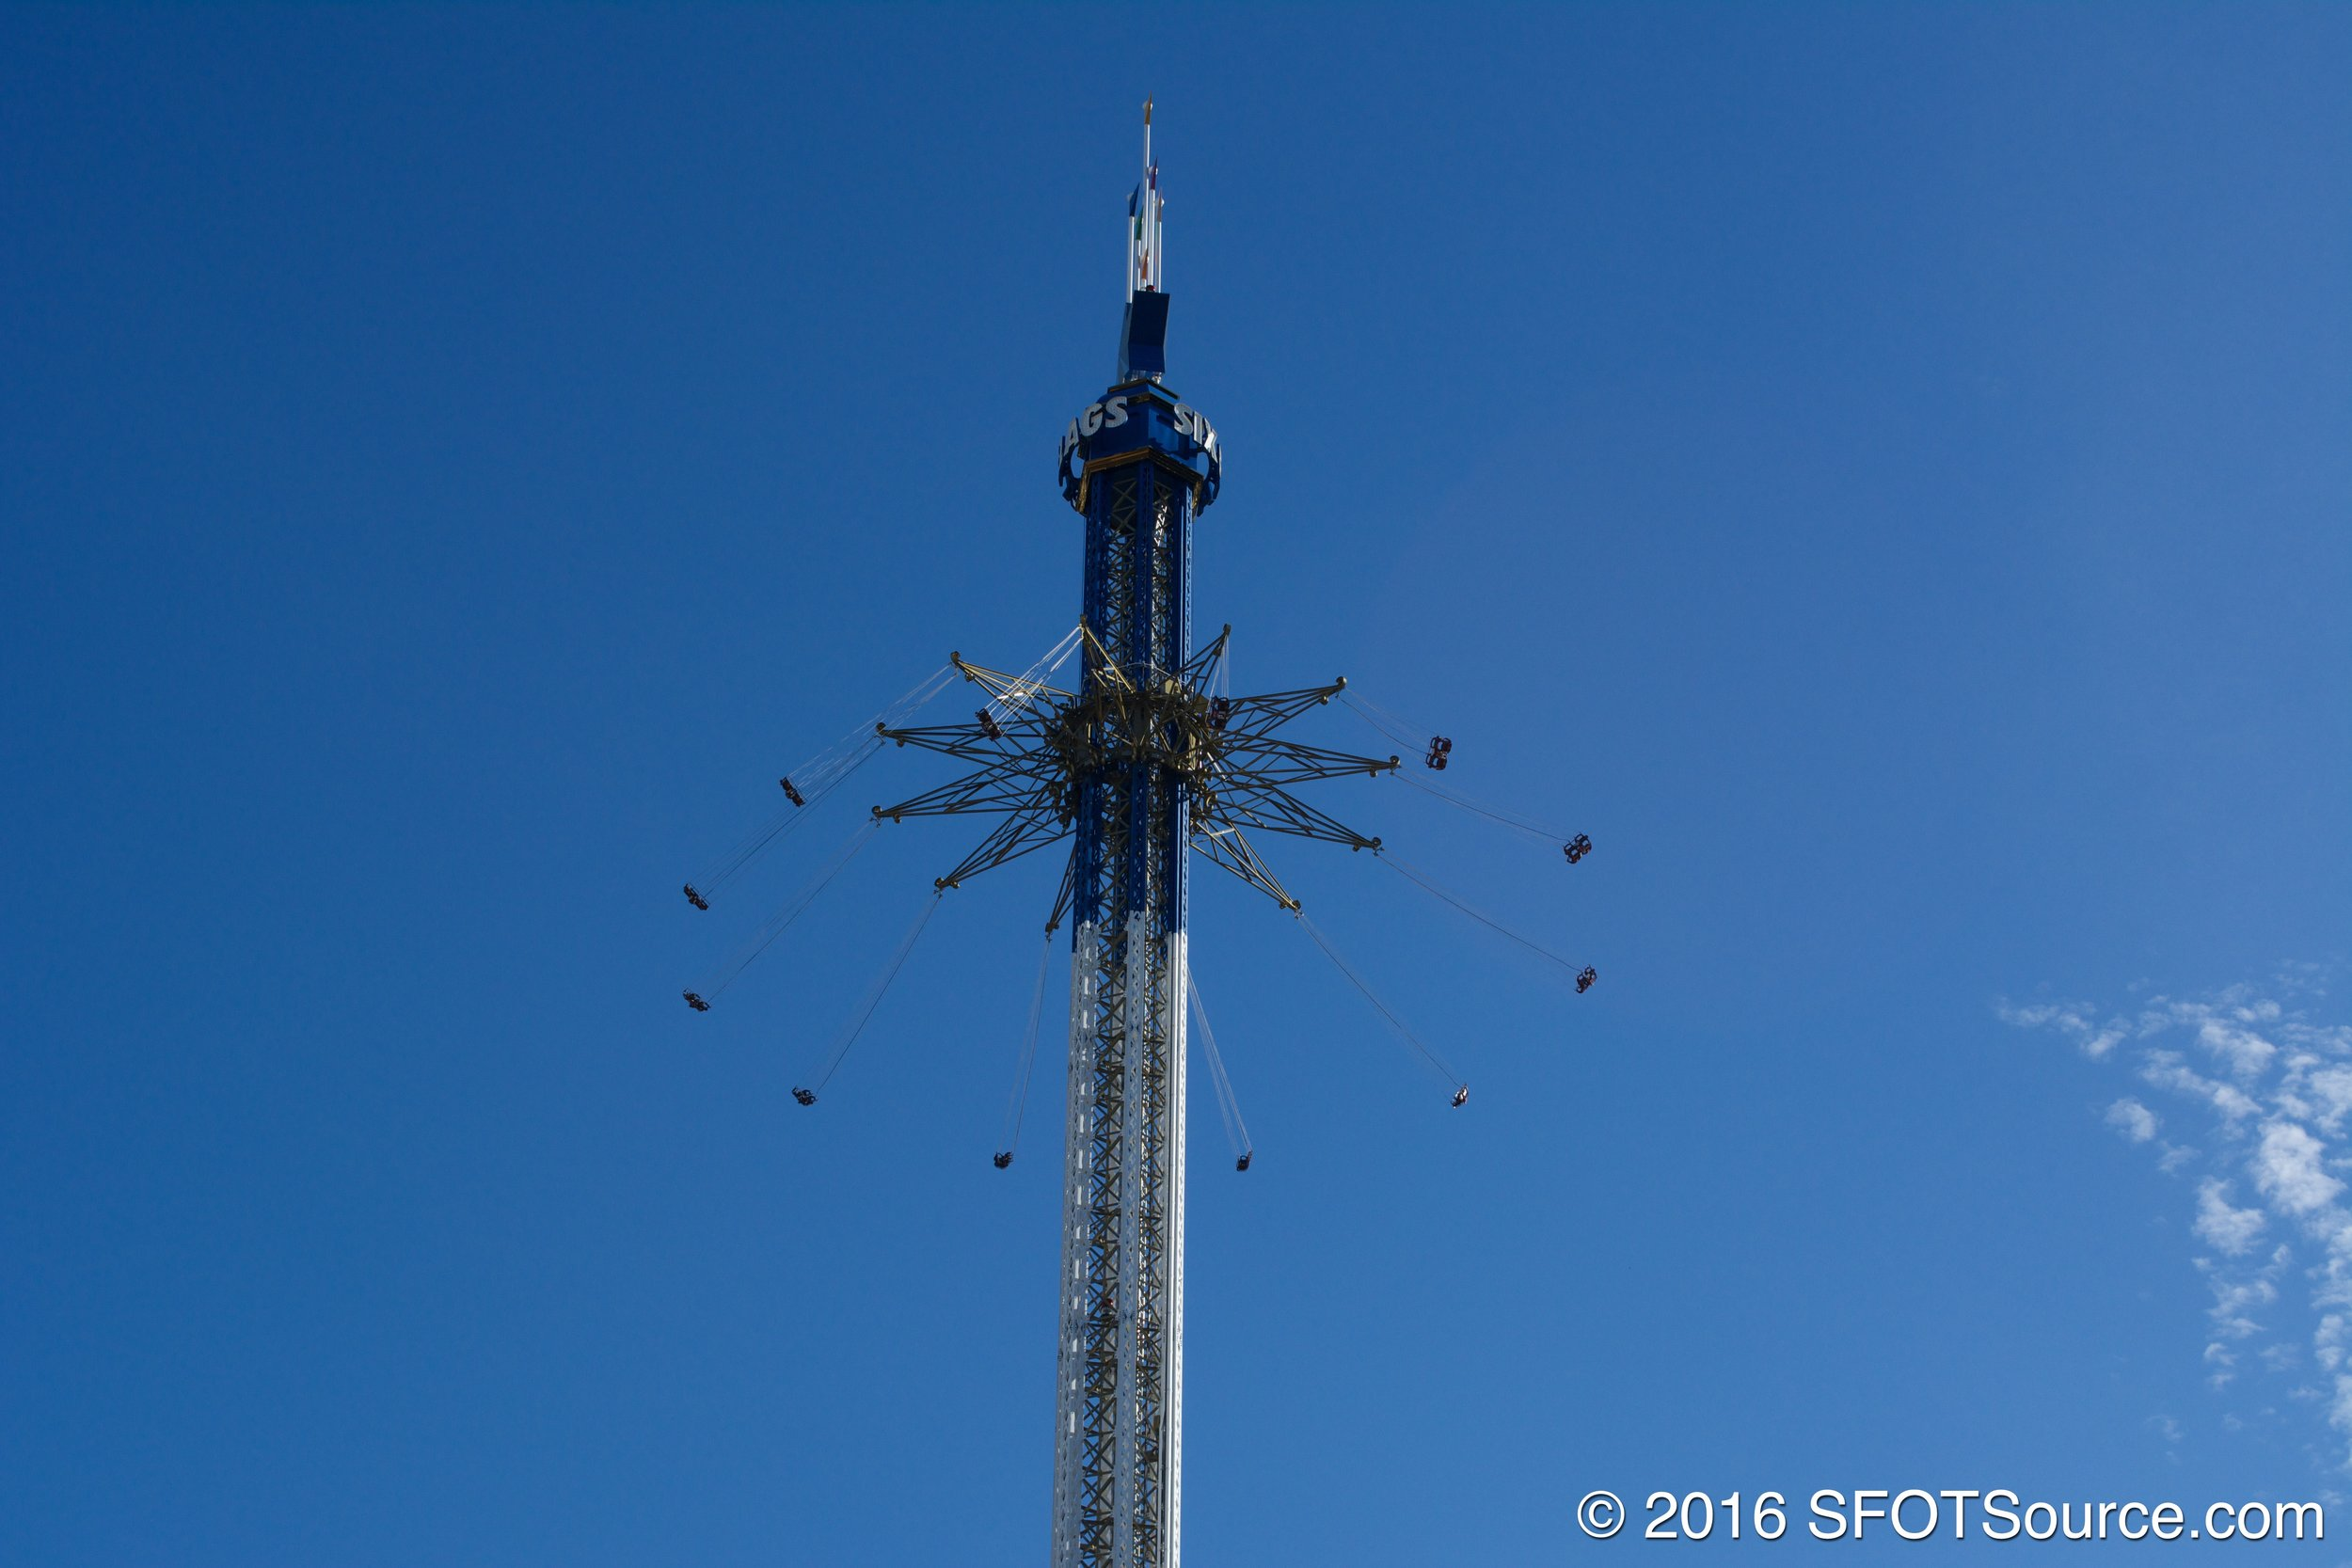 Texas SkyScreamer was added to the park in 2013.